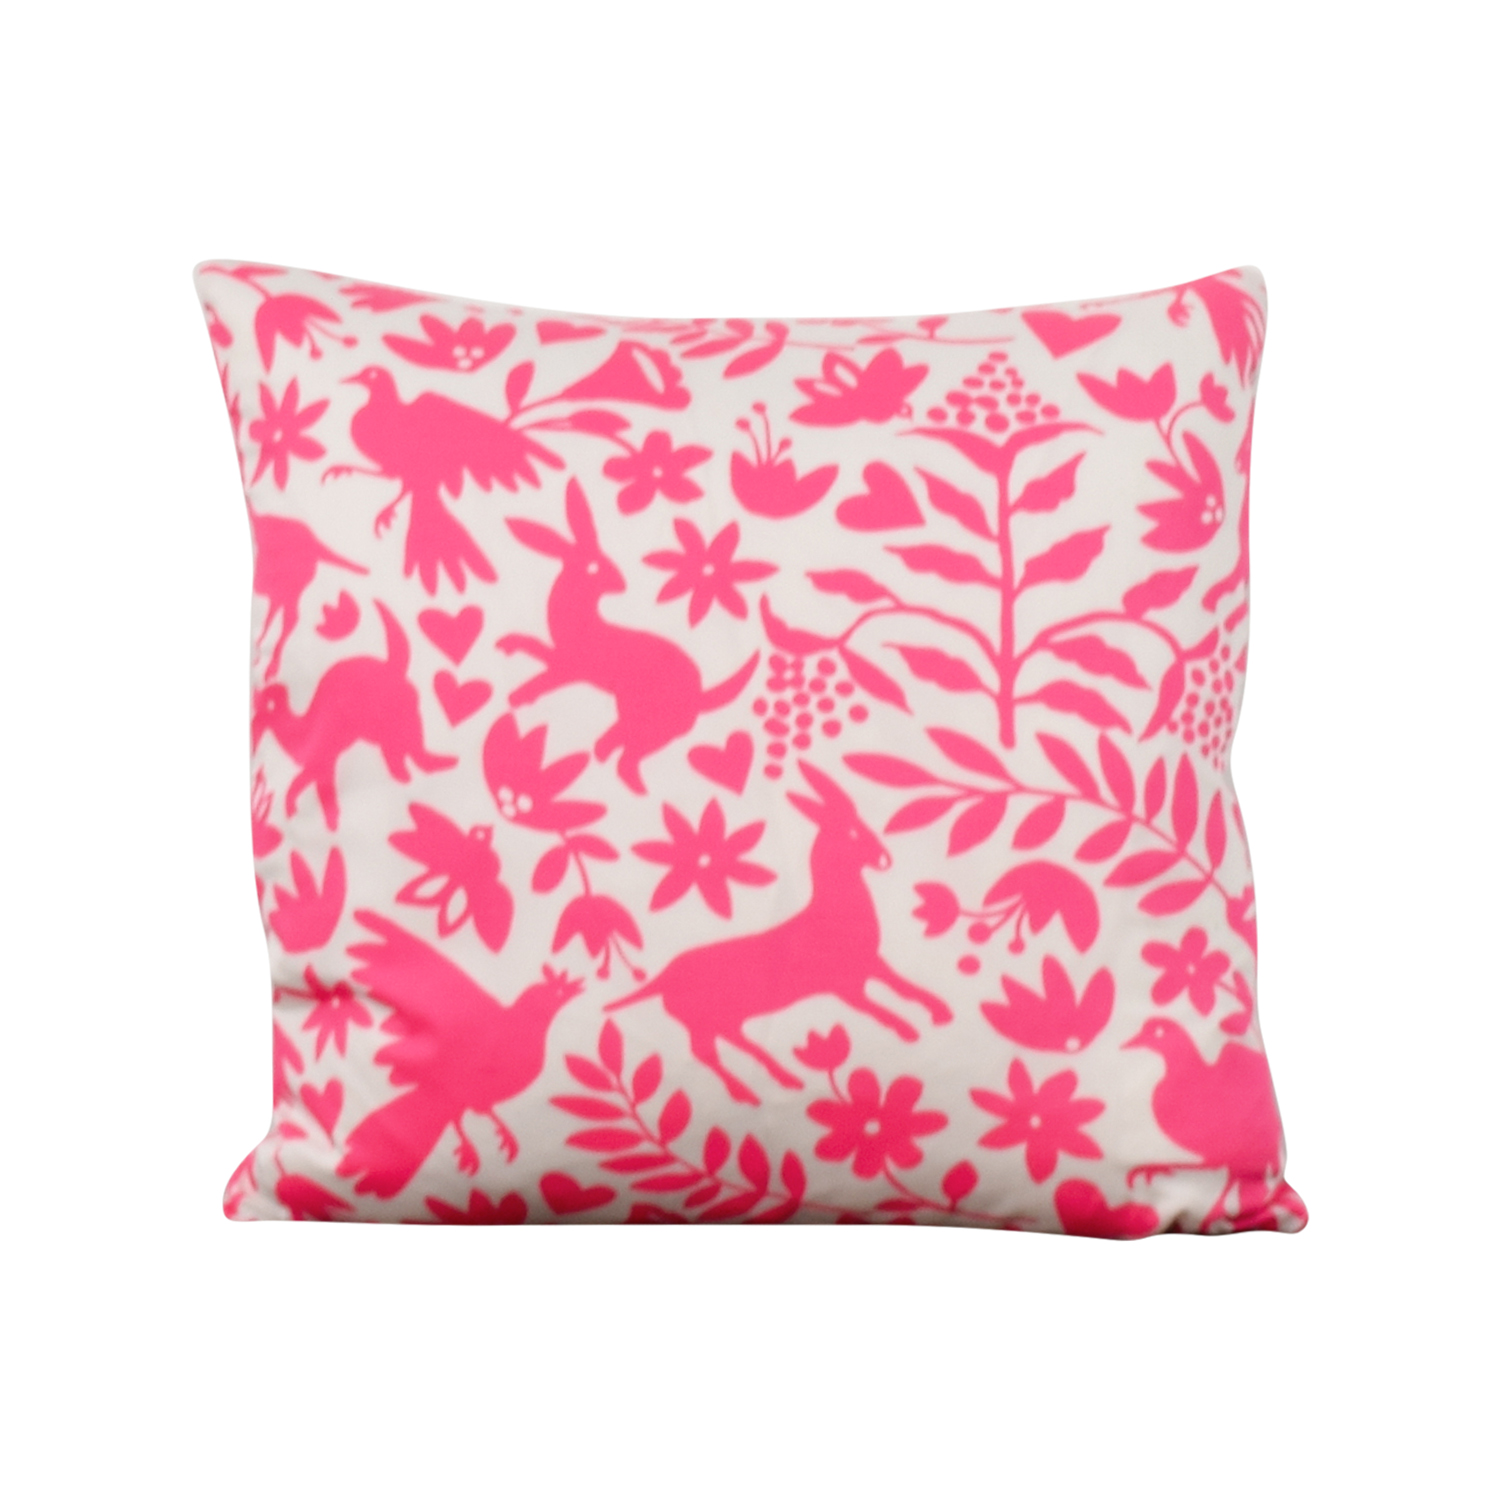 Society Social Society Social Pink Pattern Pillow for sale